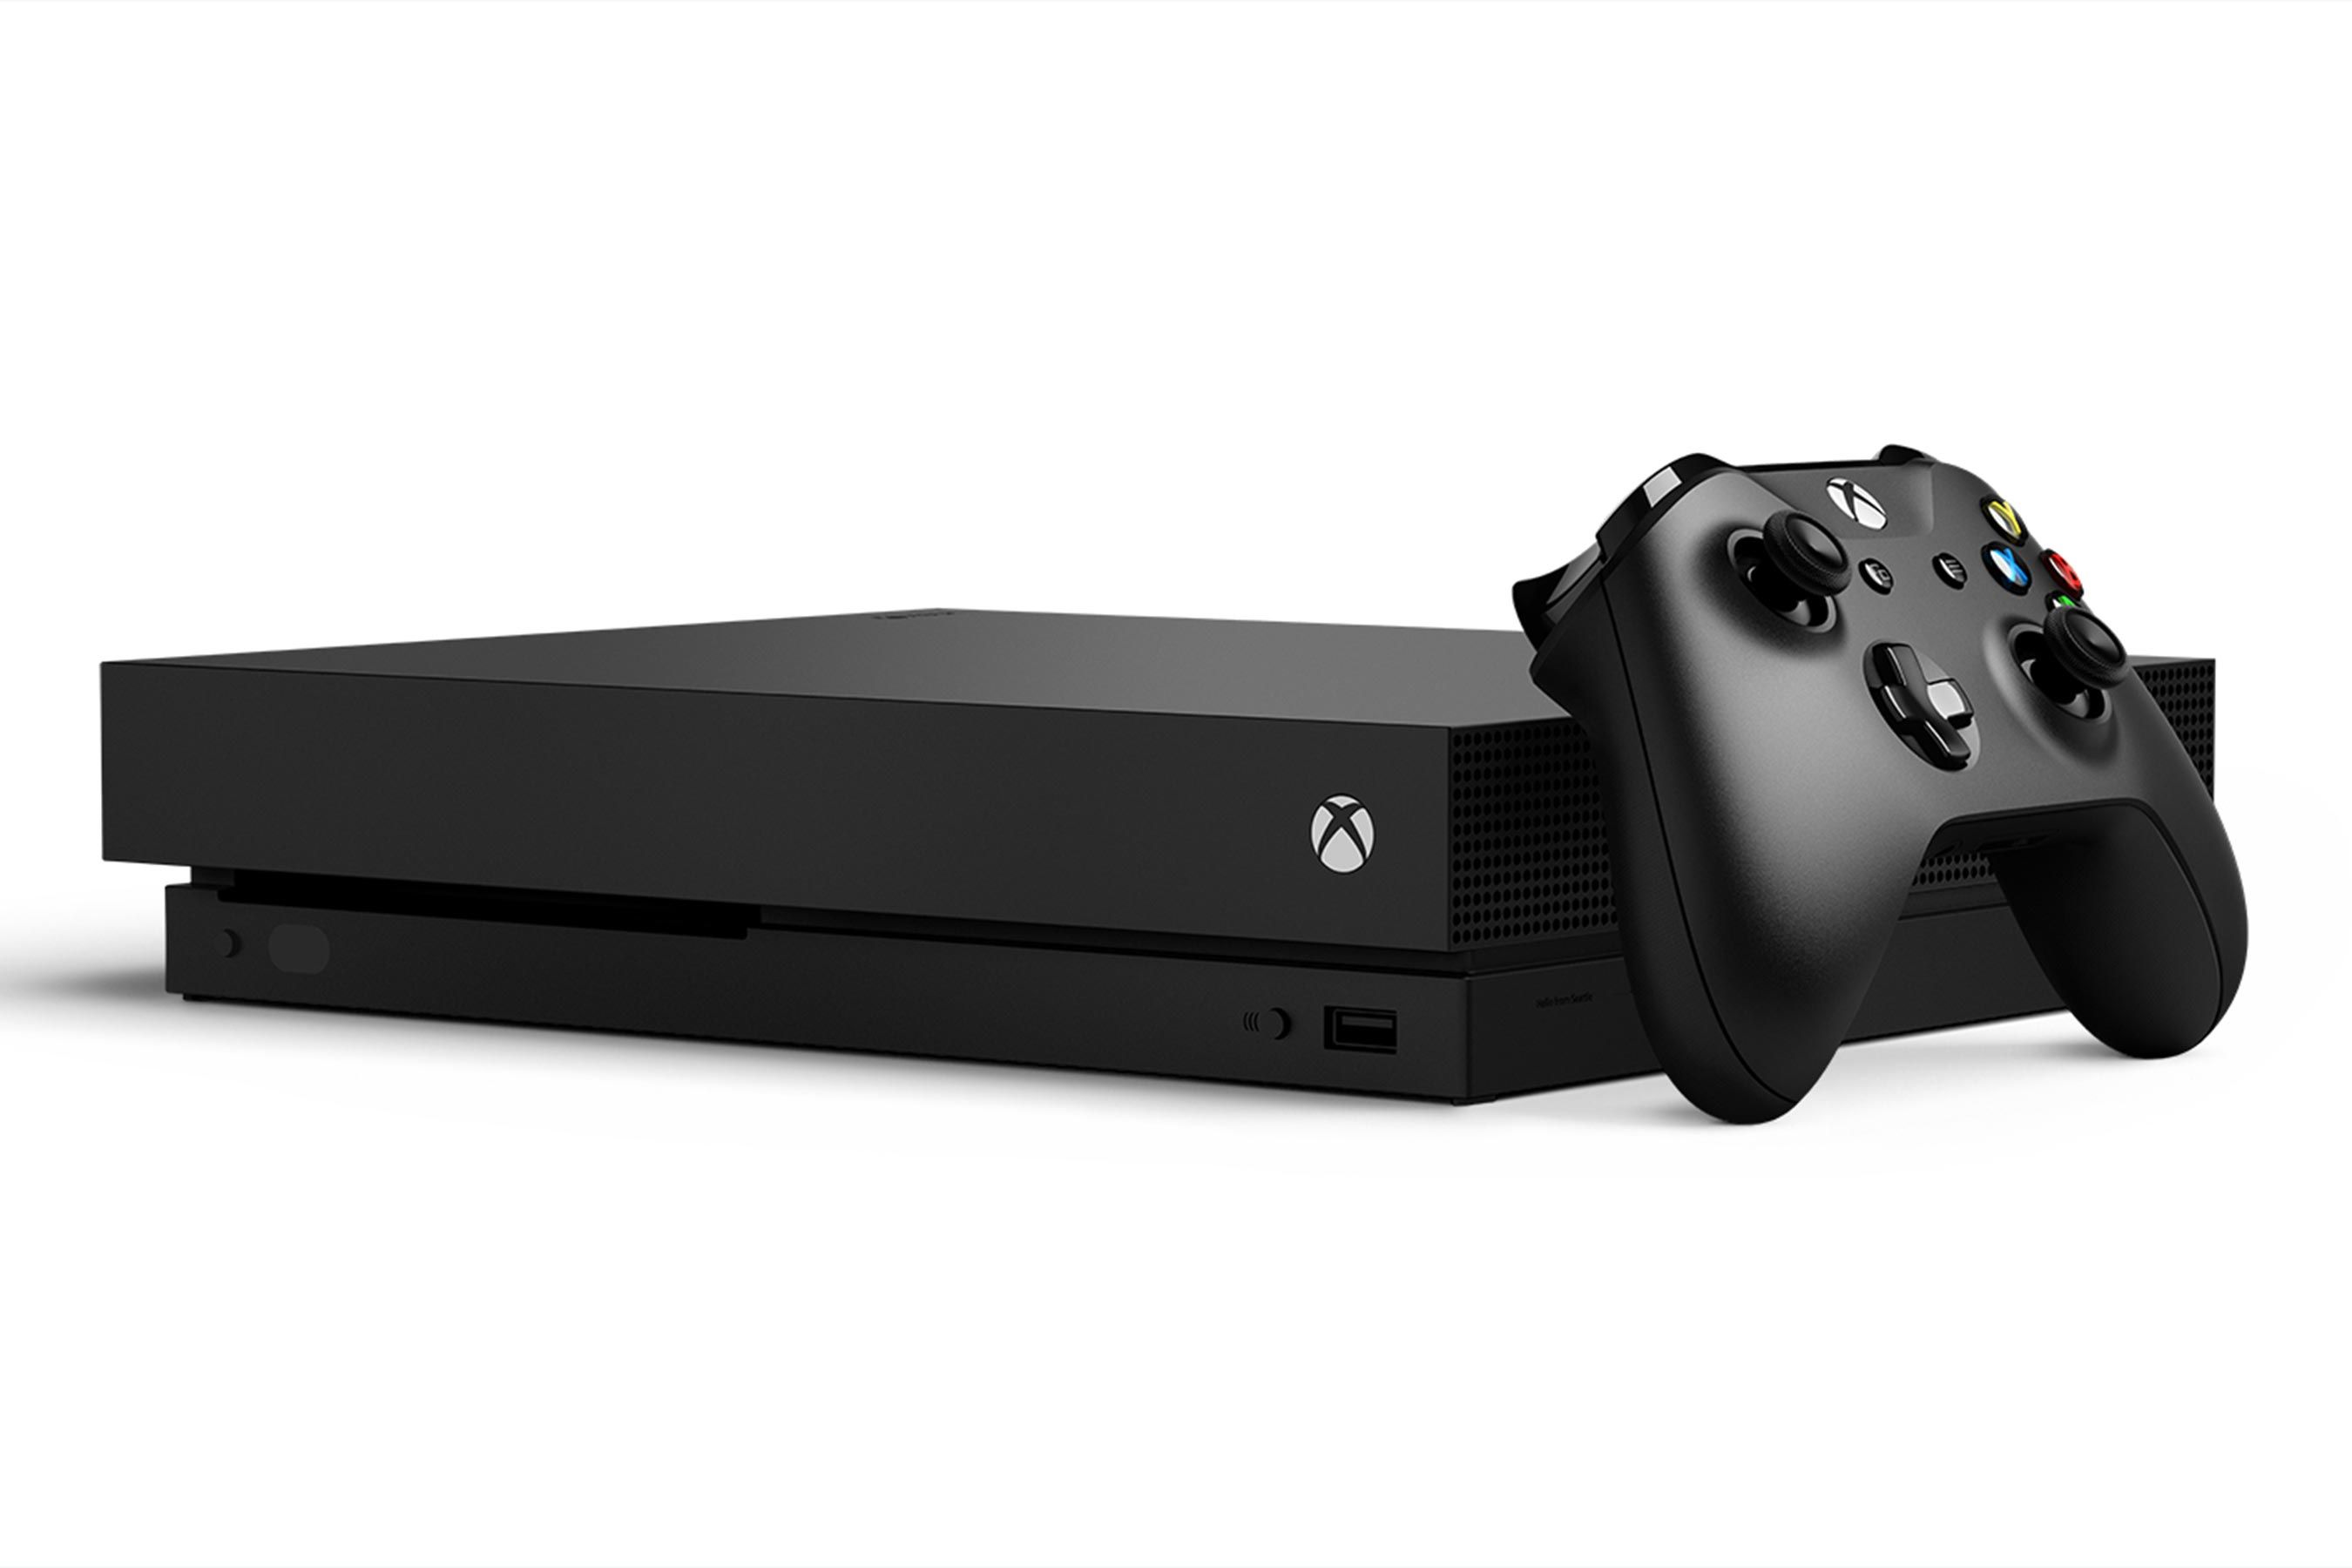 Xbox One X Is A Premium Console At A Premium Price Ew Review Xbox One Xbox Xbox One S